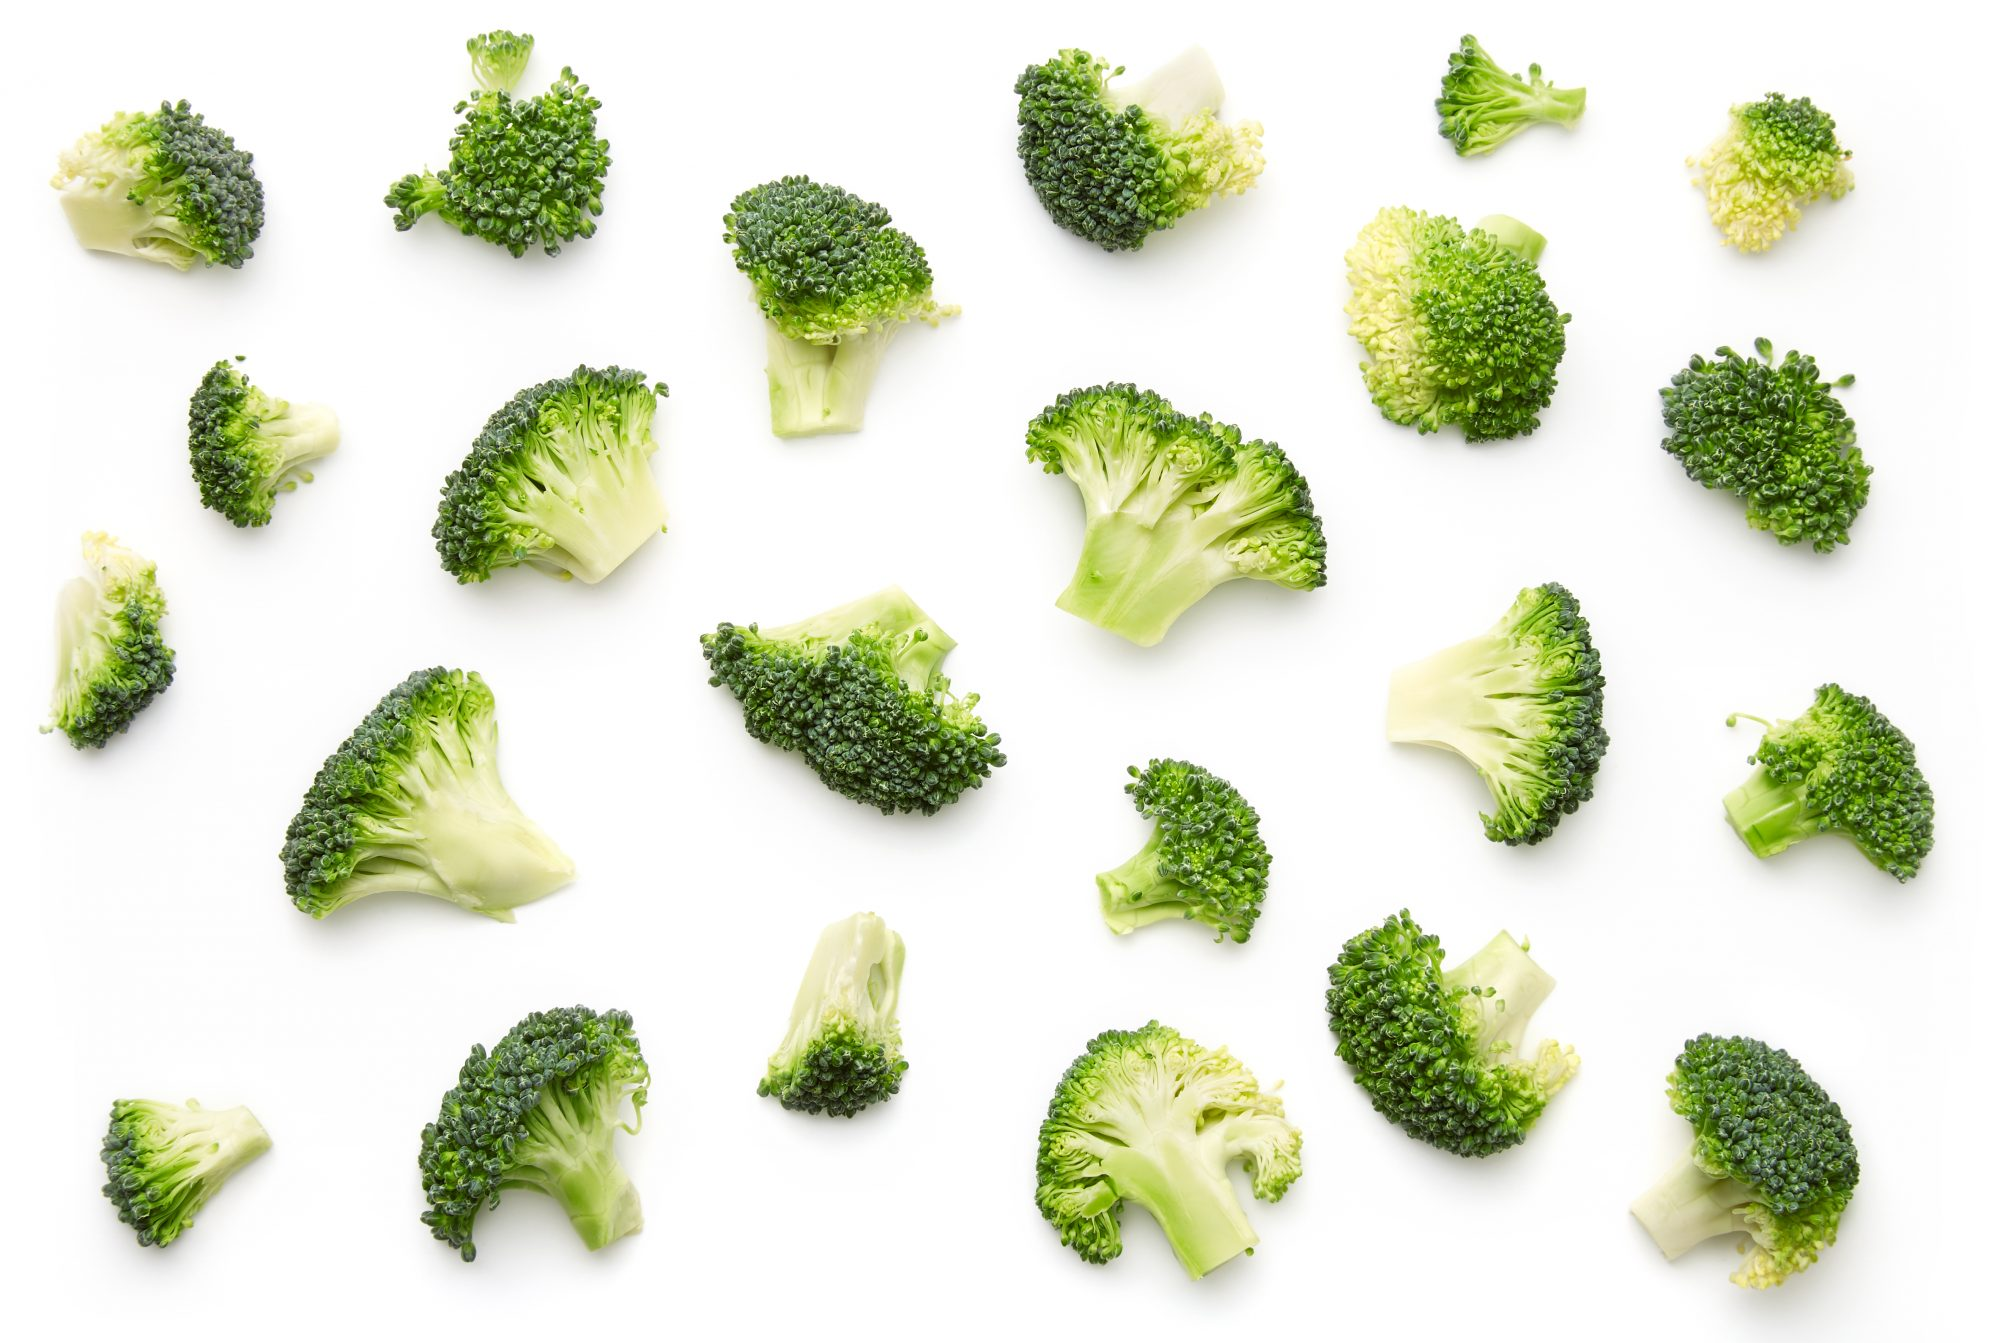 Broccoli Getty 1/21/20